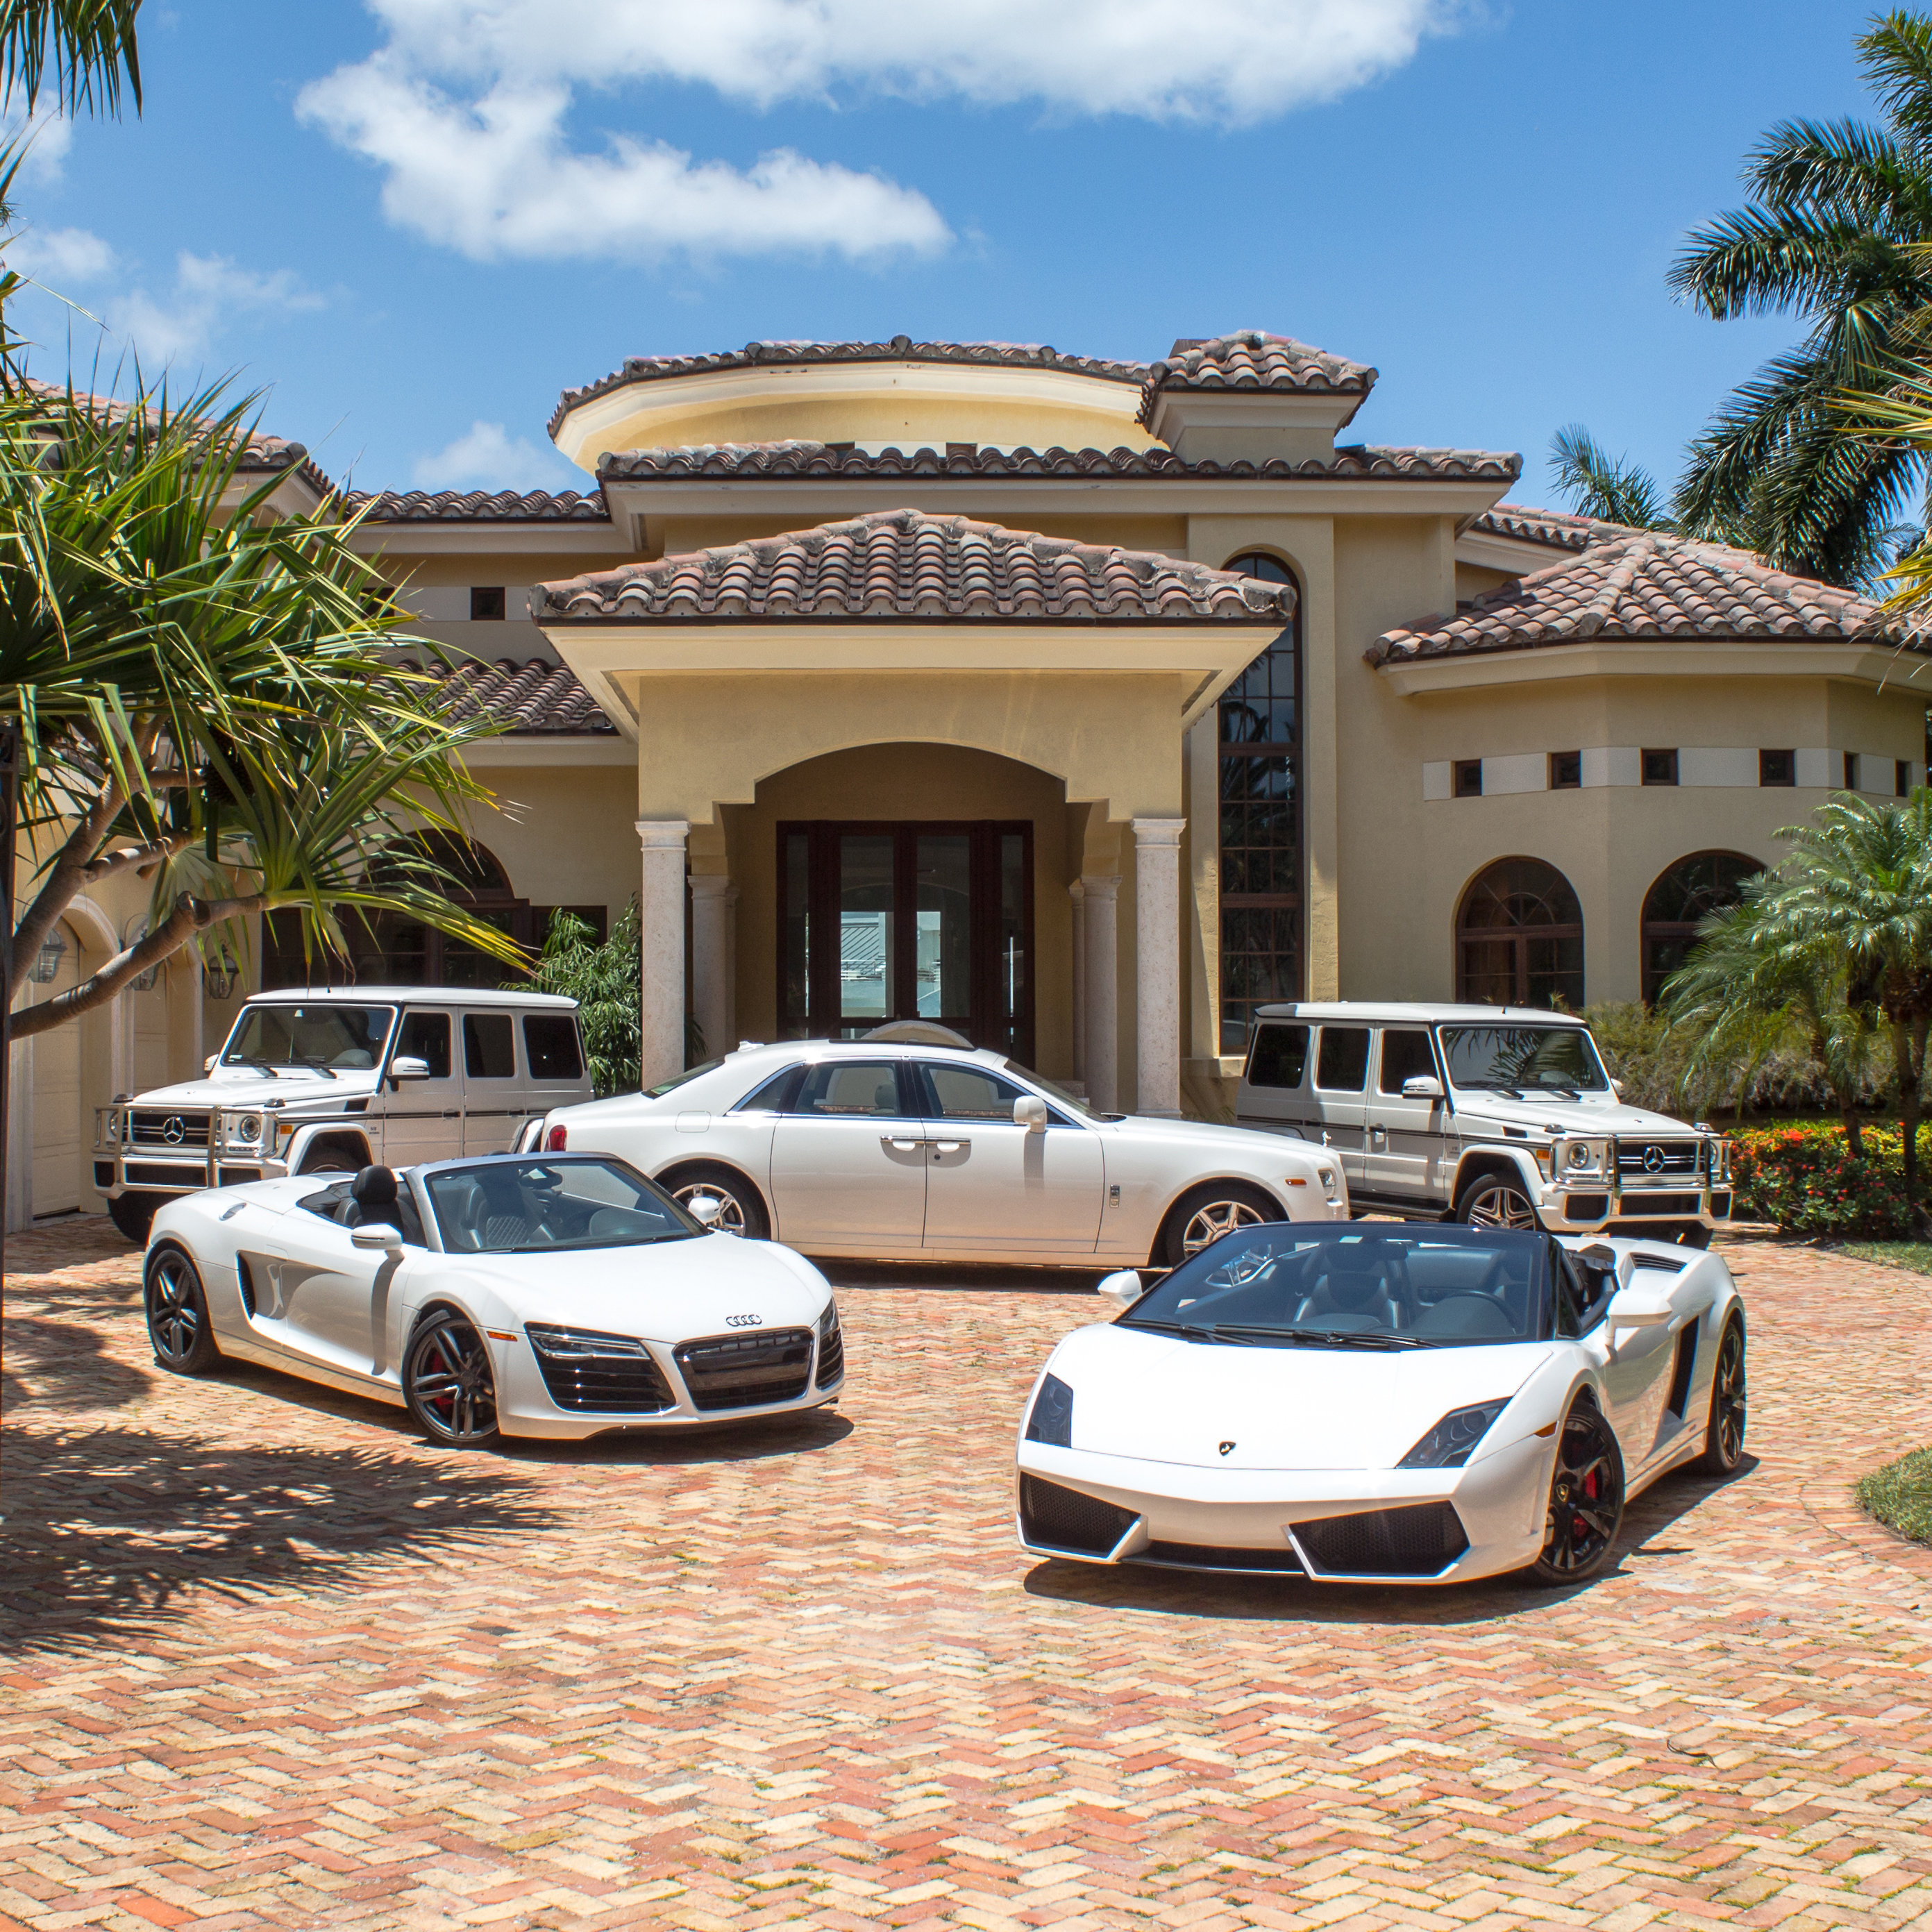 Miami Luxury Car Rental >> Golden Beach Waterfront Mansion For Sale – Exotic Car Rental Miami | mph club®